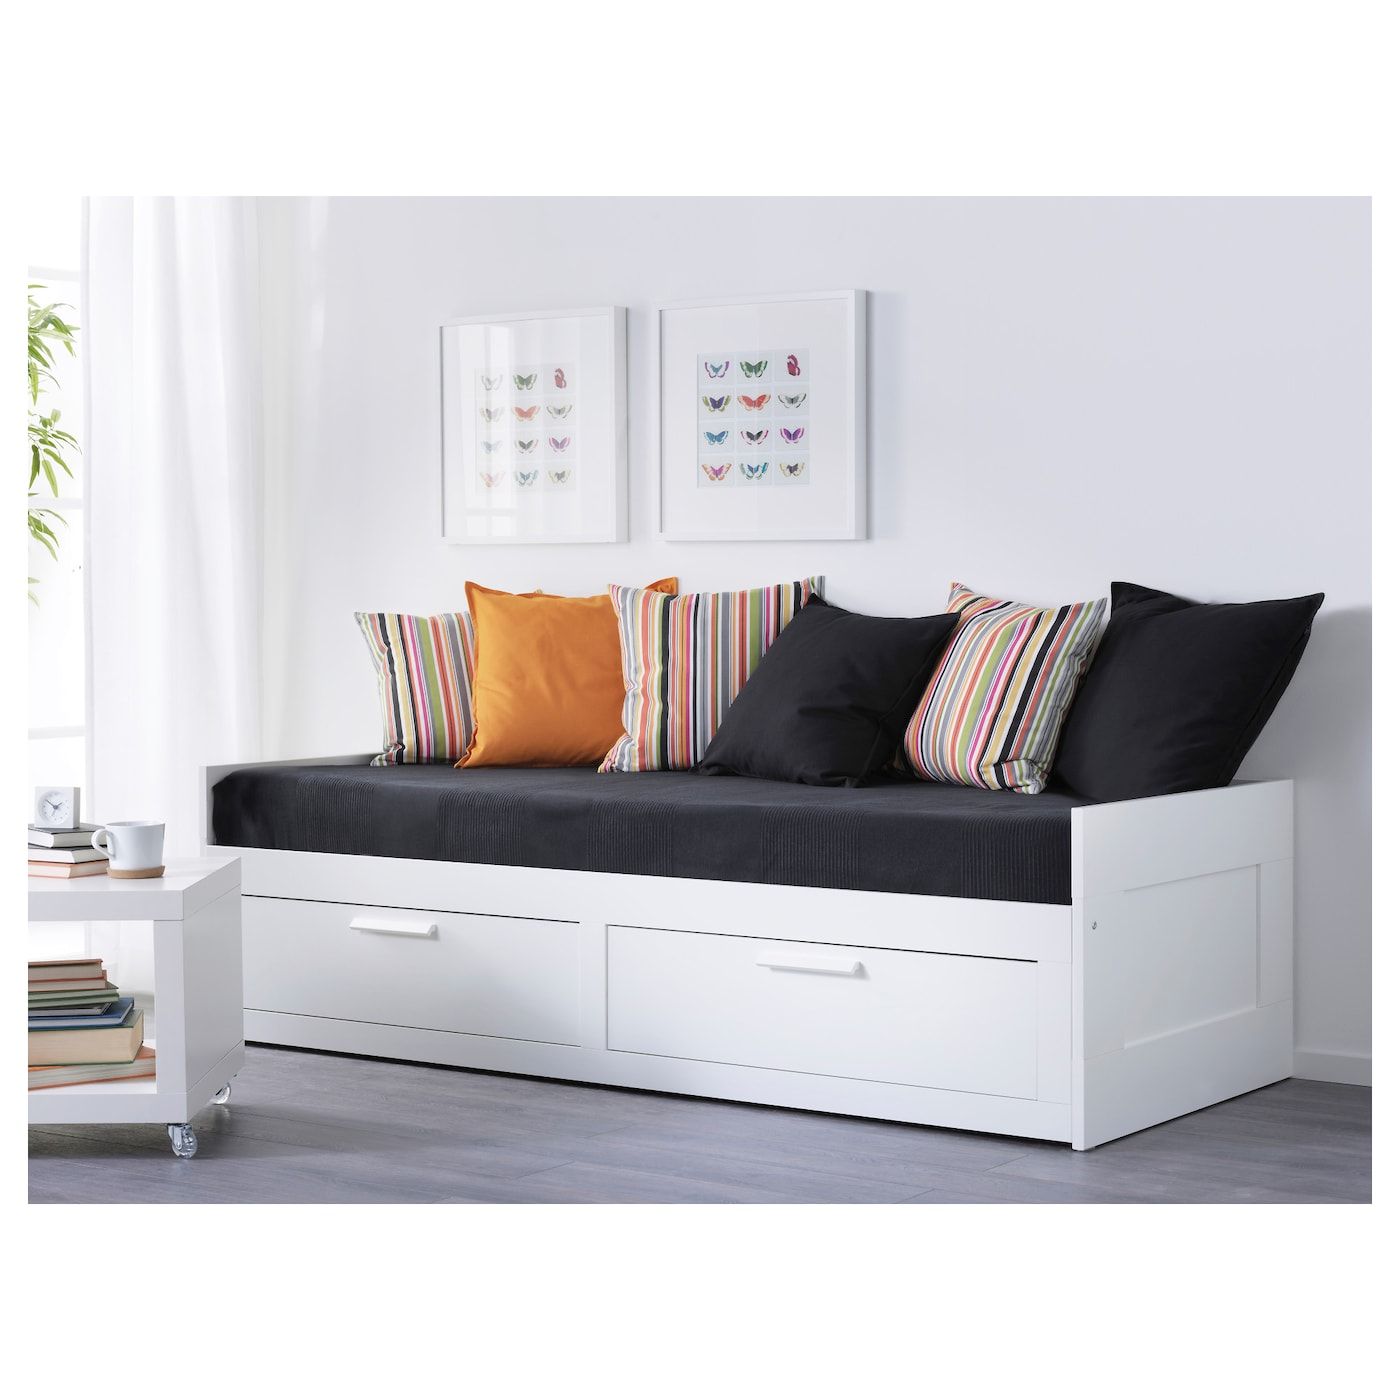 brimnes day bed w 2 drawers 2 mattresses white moshult firm 80 x 200 cm ikea. Black Bedroom Furniture Sets. Home Design Ideas